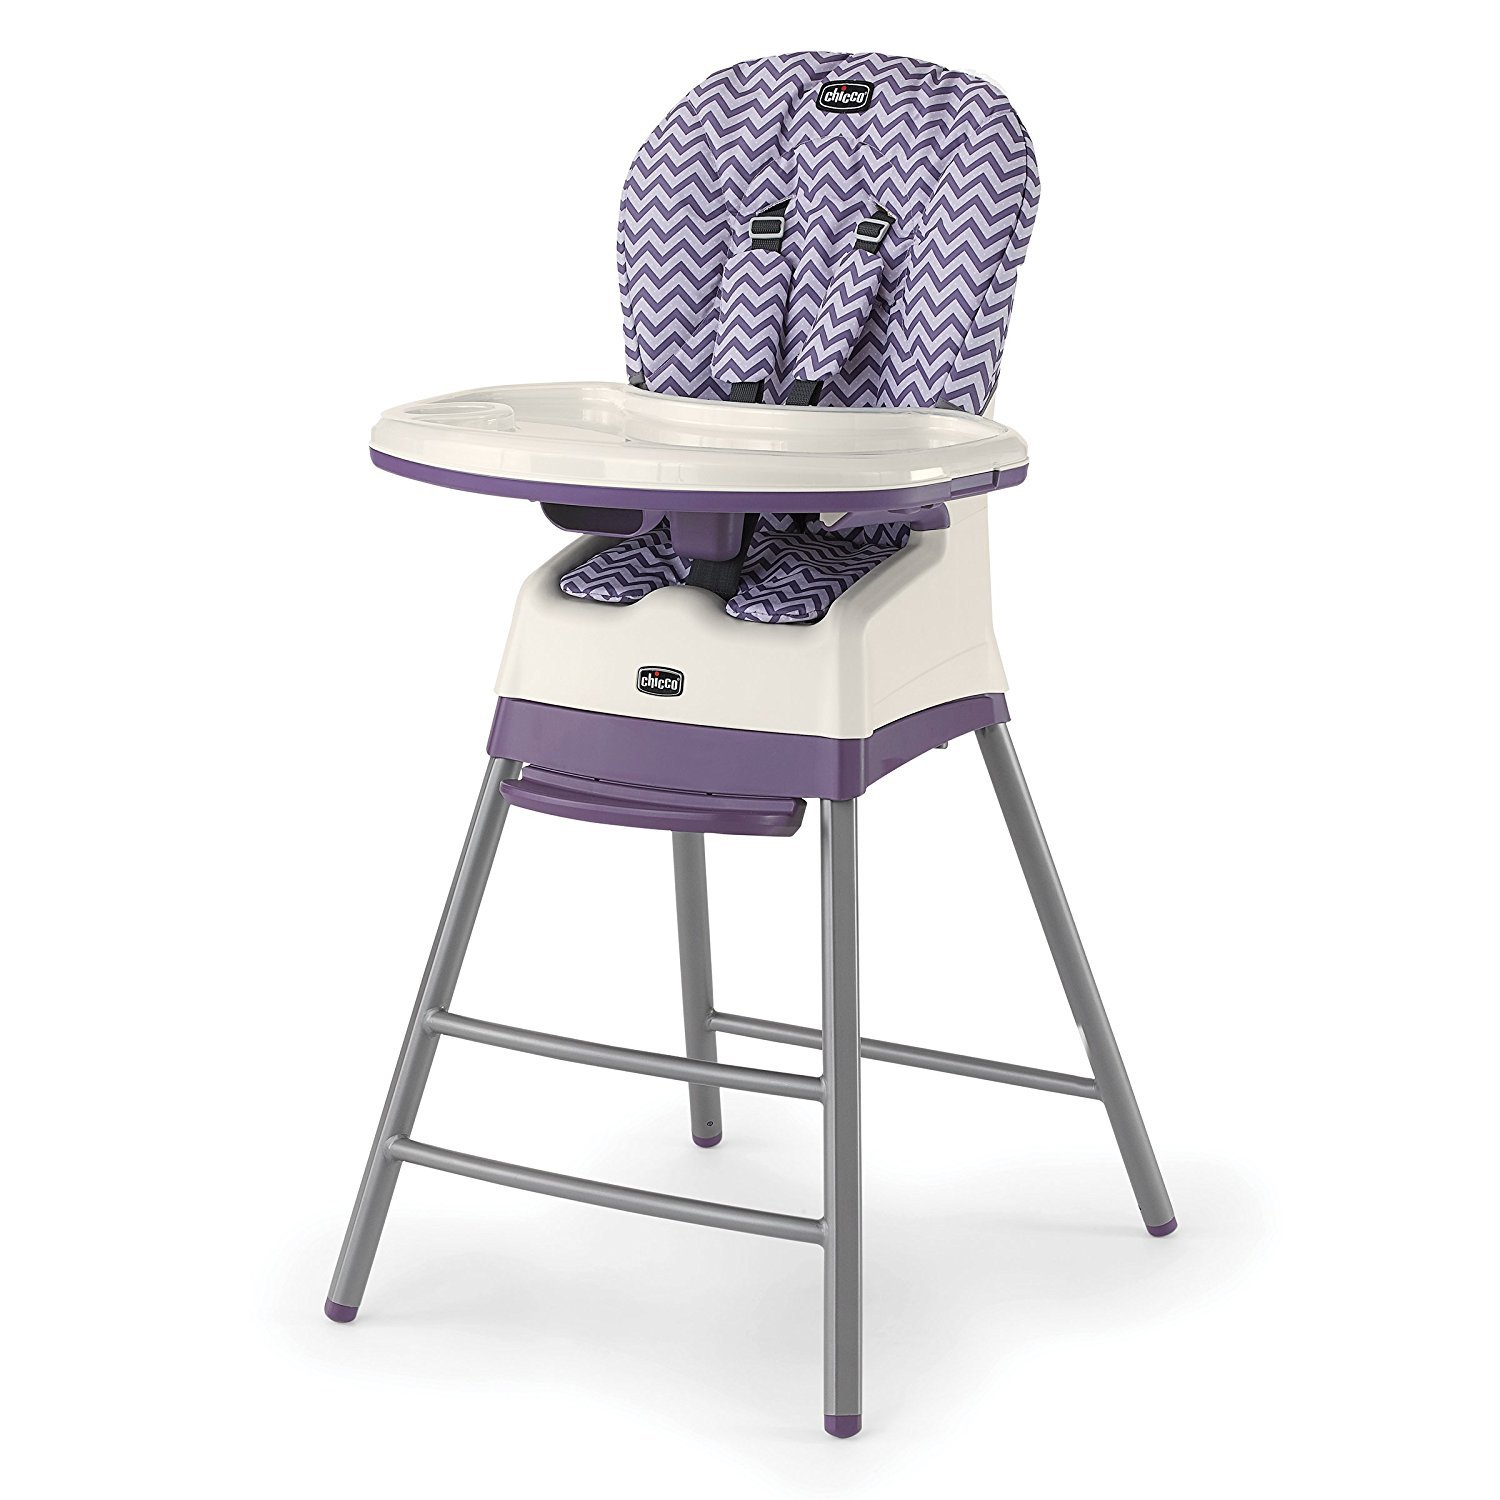 Chicco Stack 3-in-1 Multi-Stage Adjustable Portable Highchair Booster, Mulberry